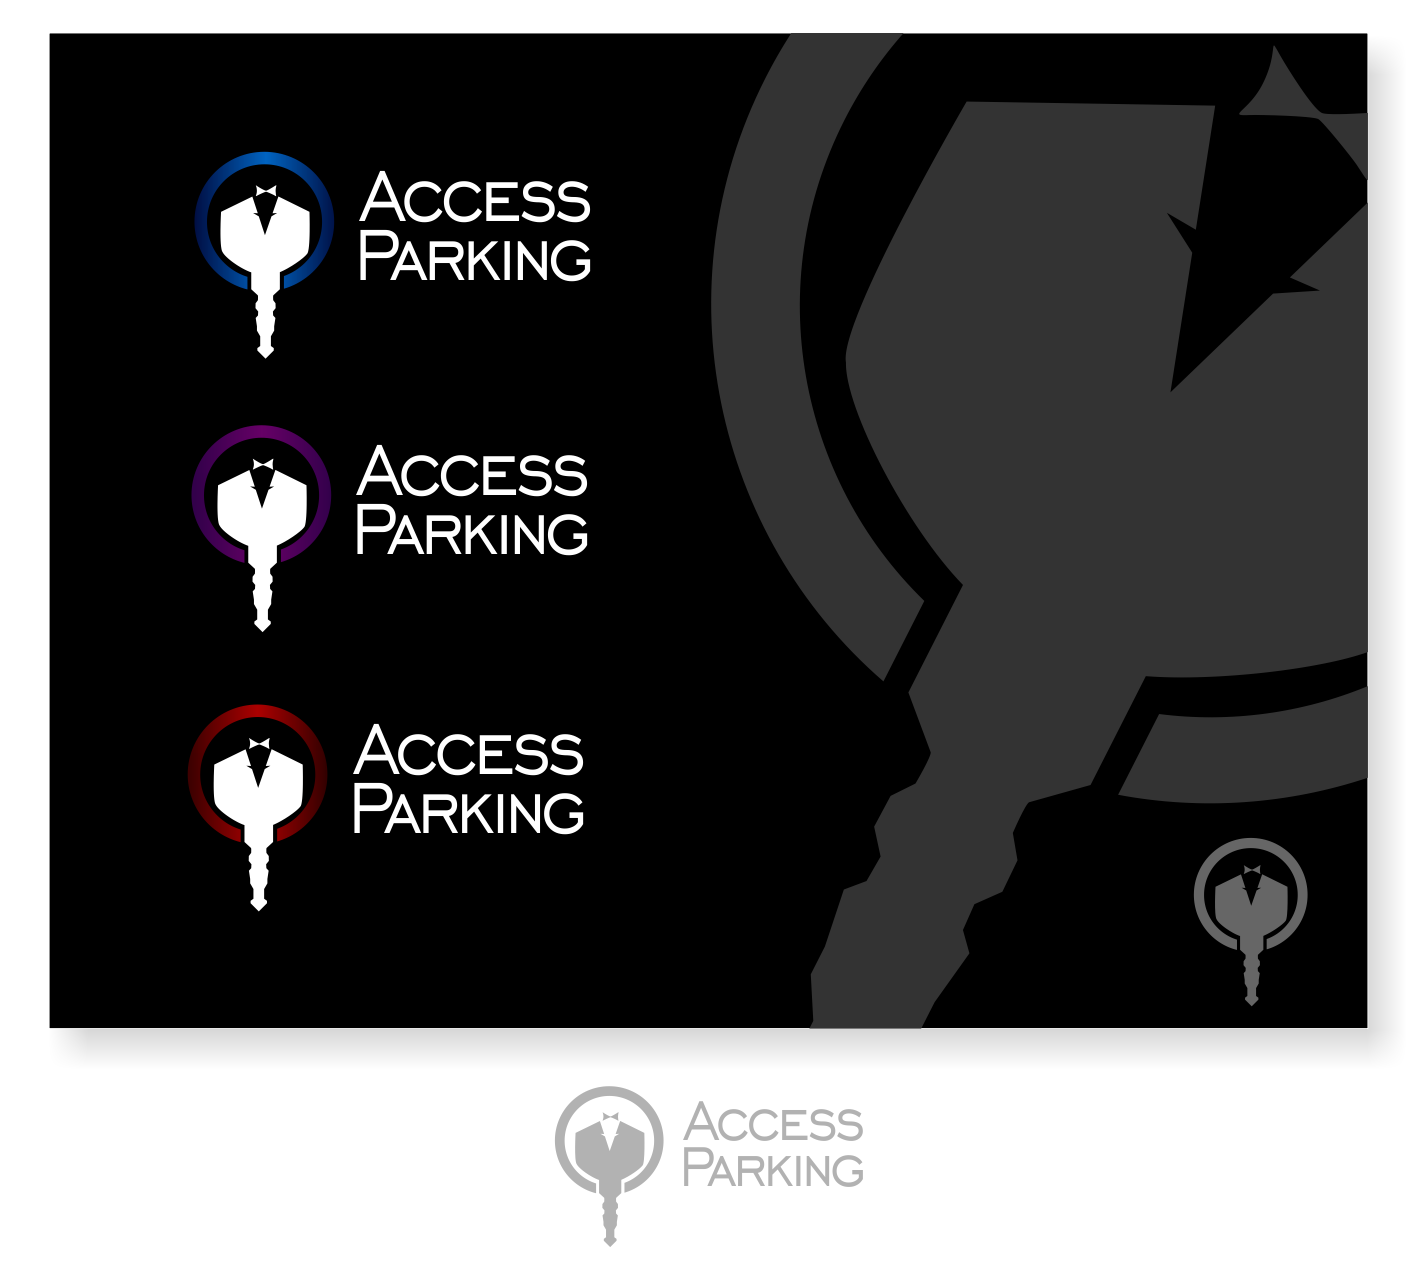 New logo wanted for Access Parking